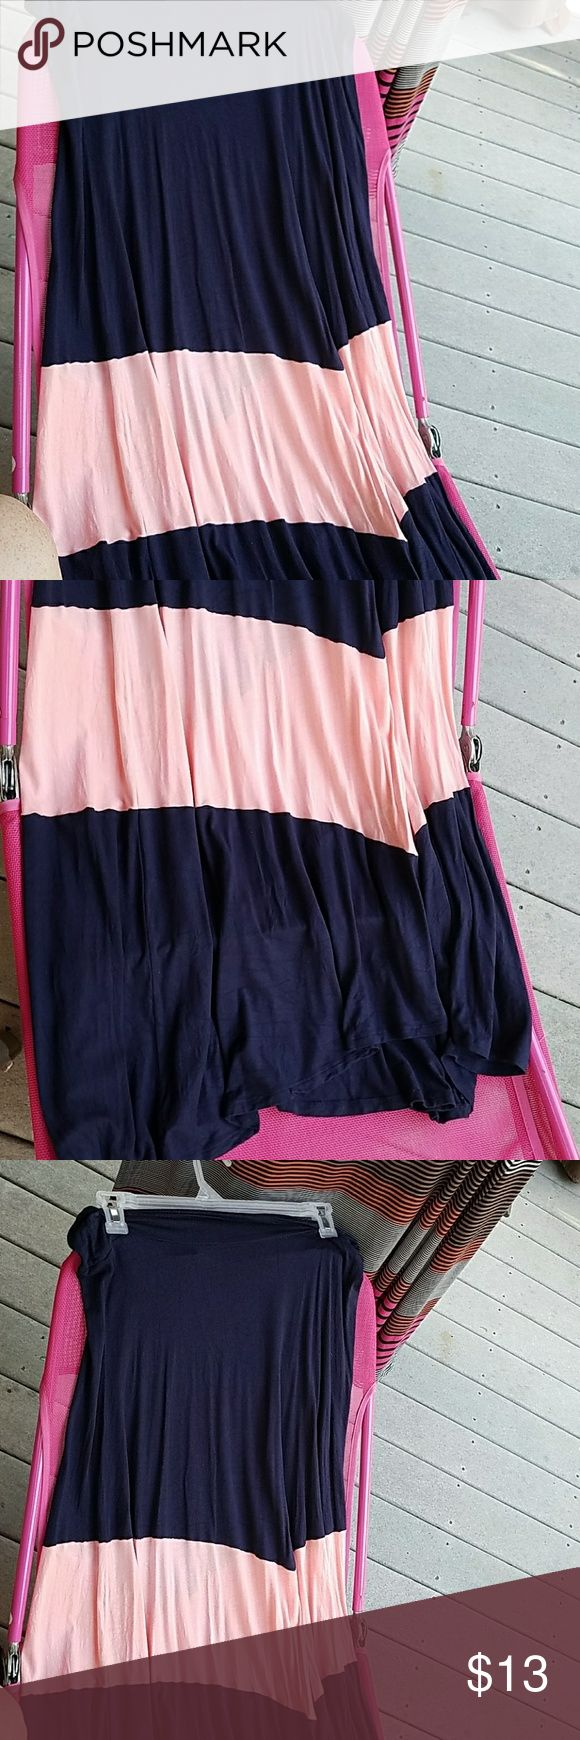 Navy and peach maxi skirt. Large. Like New Bought off poshmark. Never worn fits true to a large Alyx Skirts Maxi